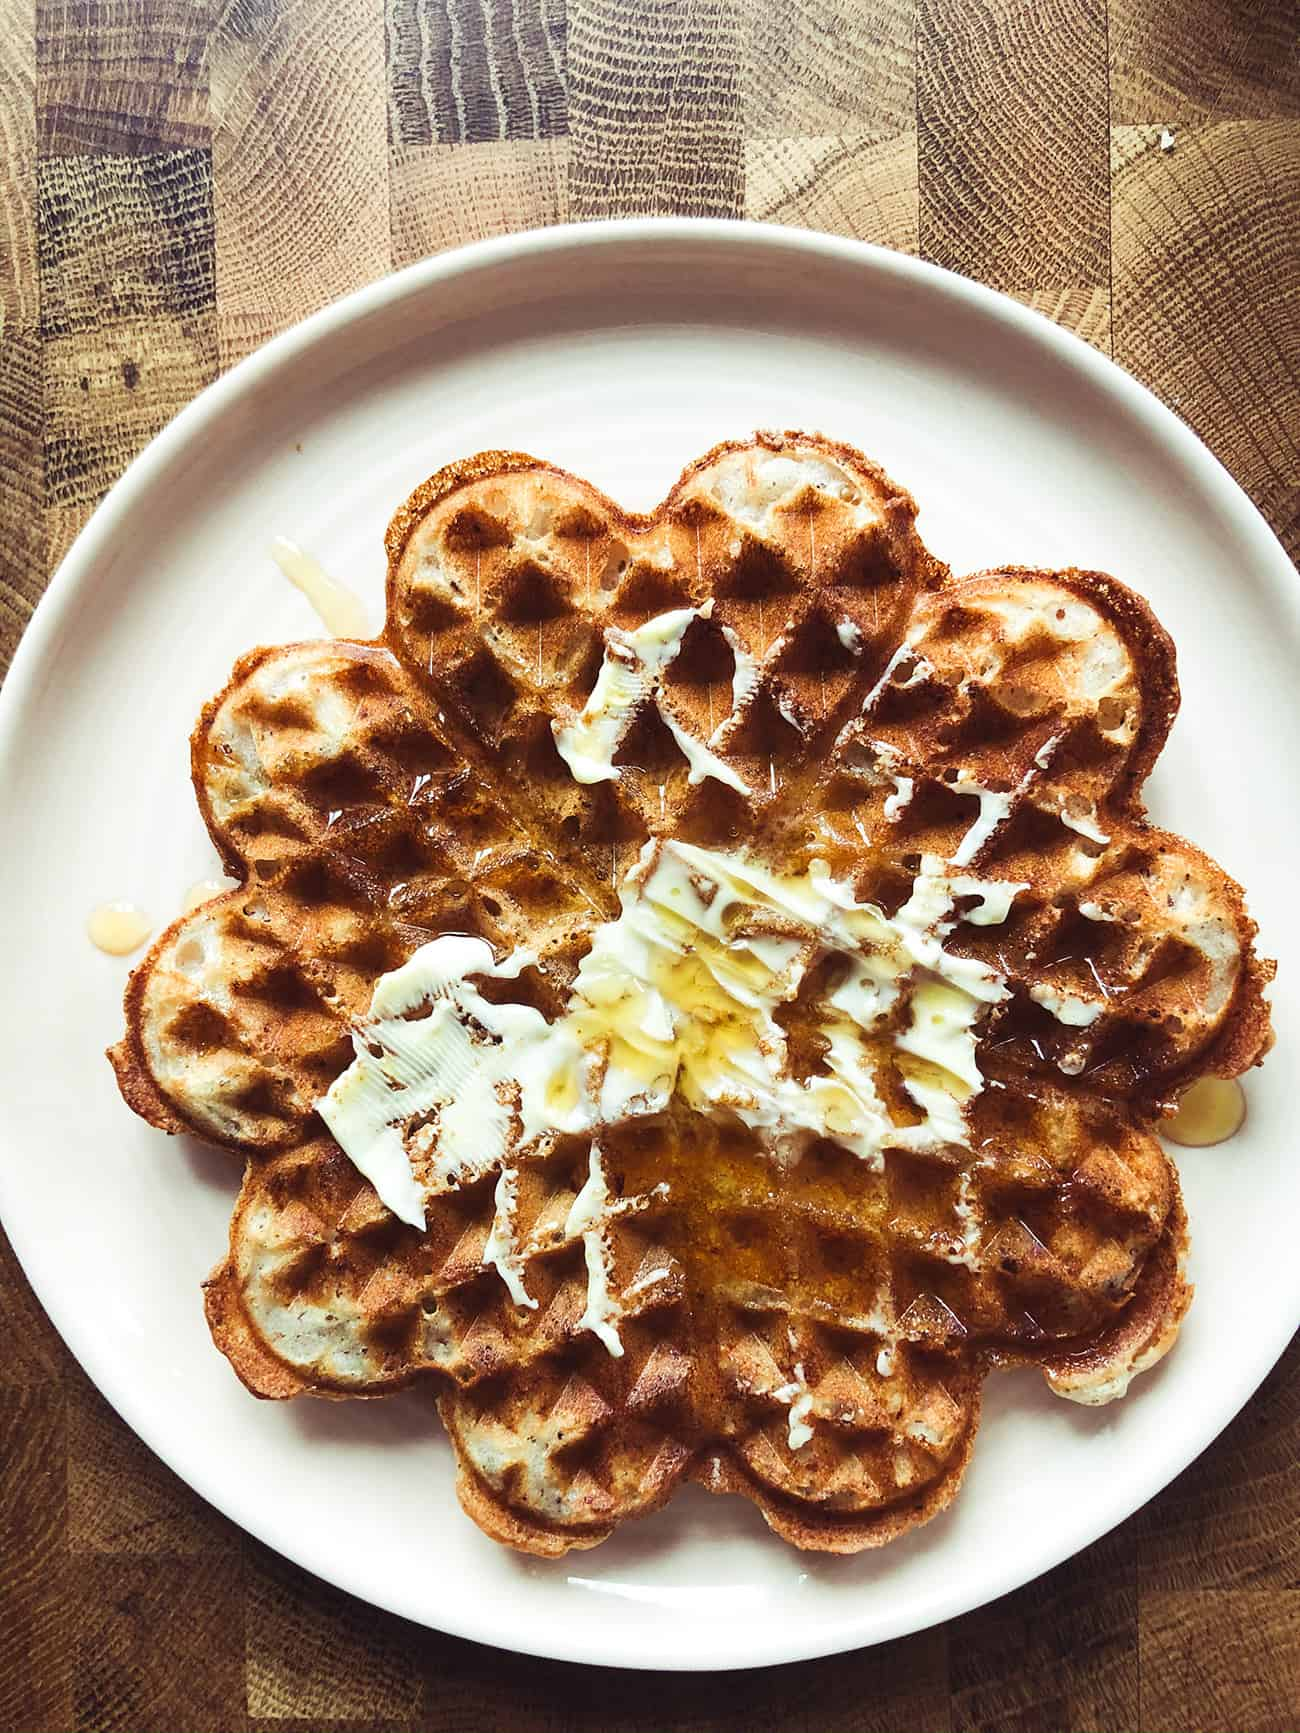 a crispy vegan waffle with butter and maple syrup on a plate